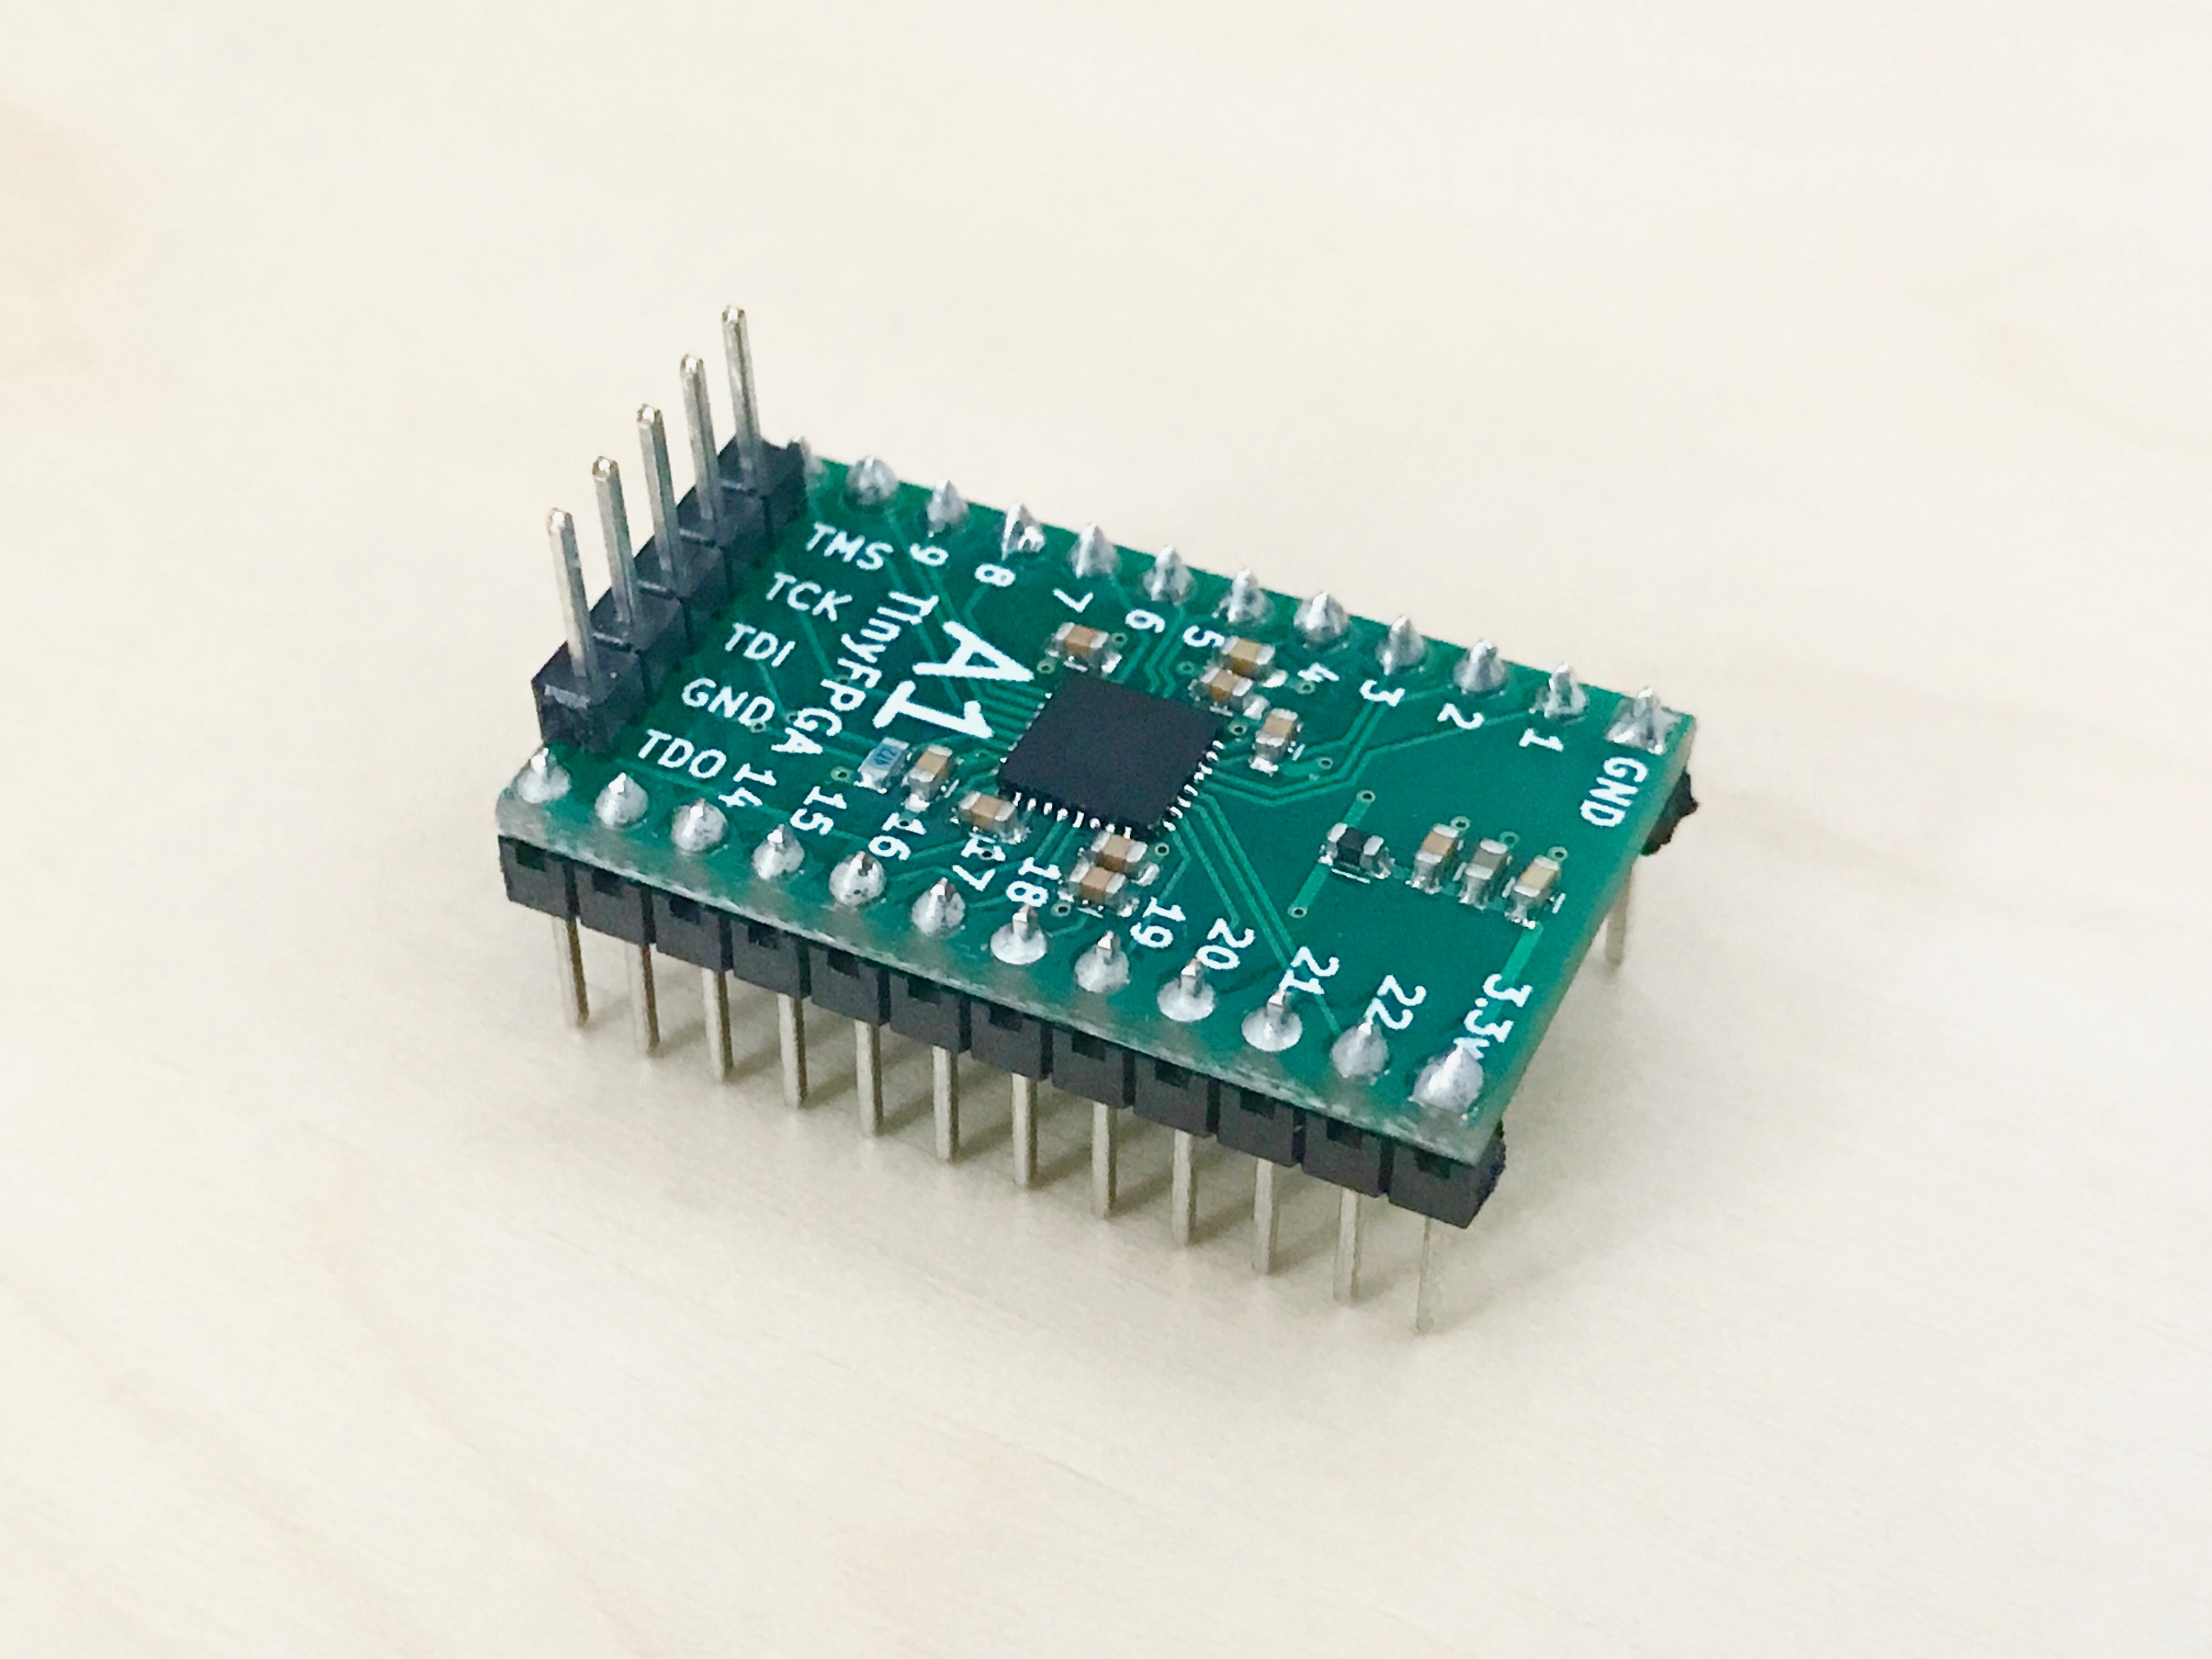 TinyFPGA A1 with pins